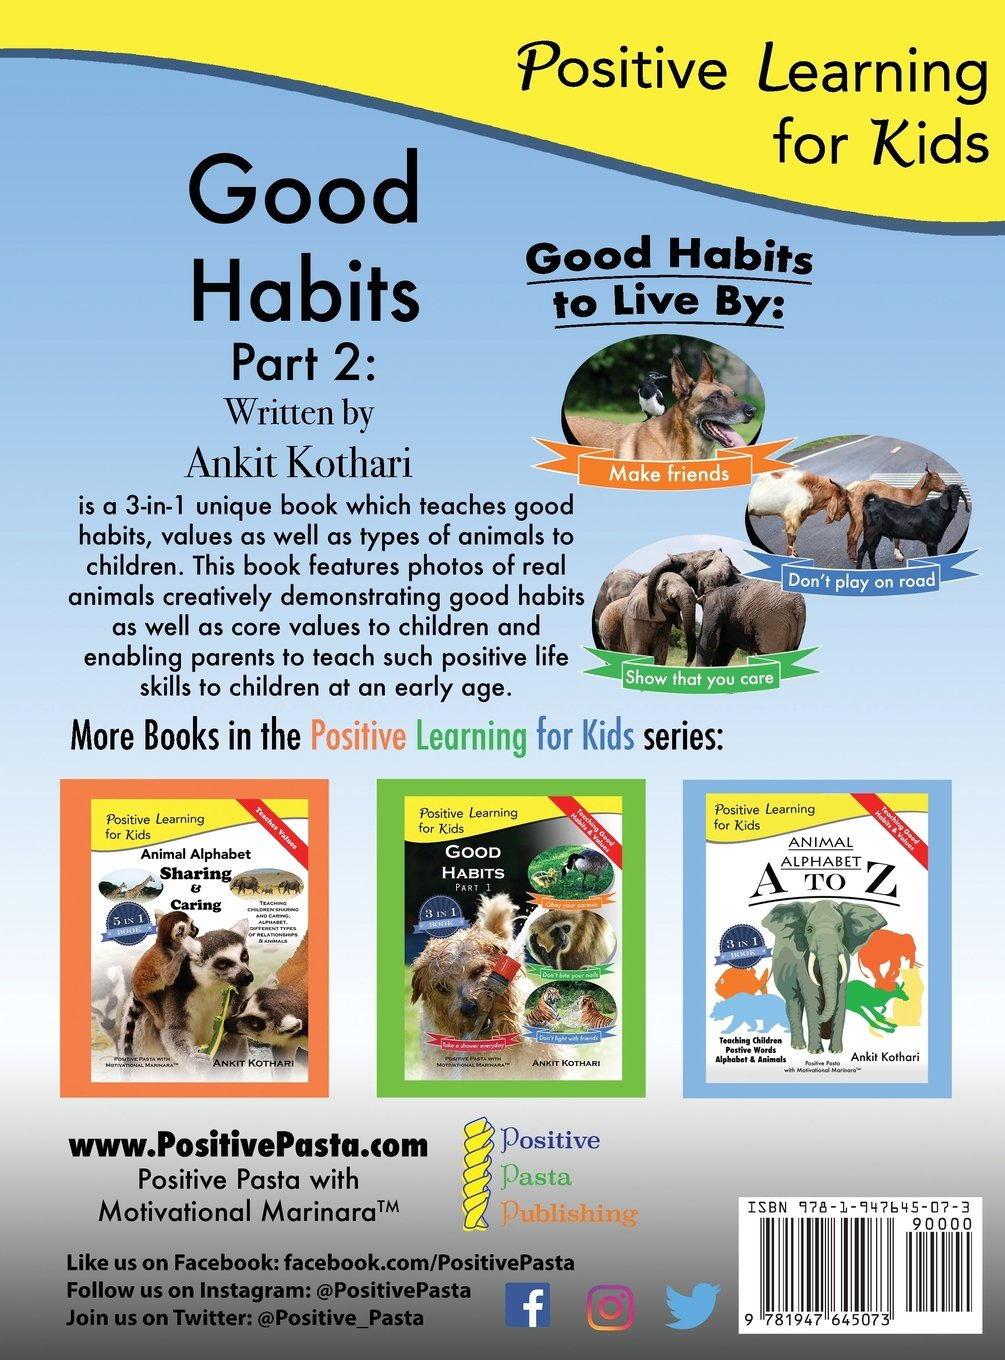 Good Habits Part 2: A 3-In-1 Unique Book Teaching Children Good Habits, Values as Well as Types of Animals (Positive Learning for Kids)